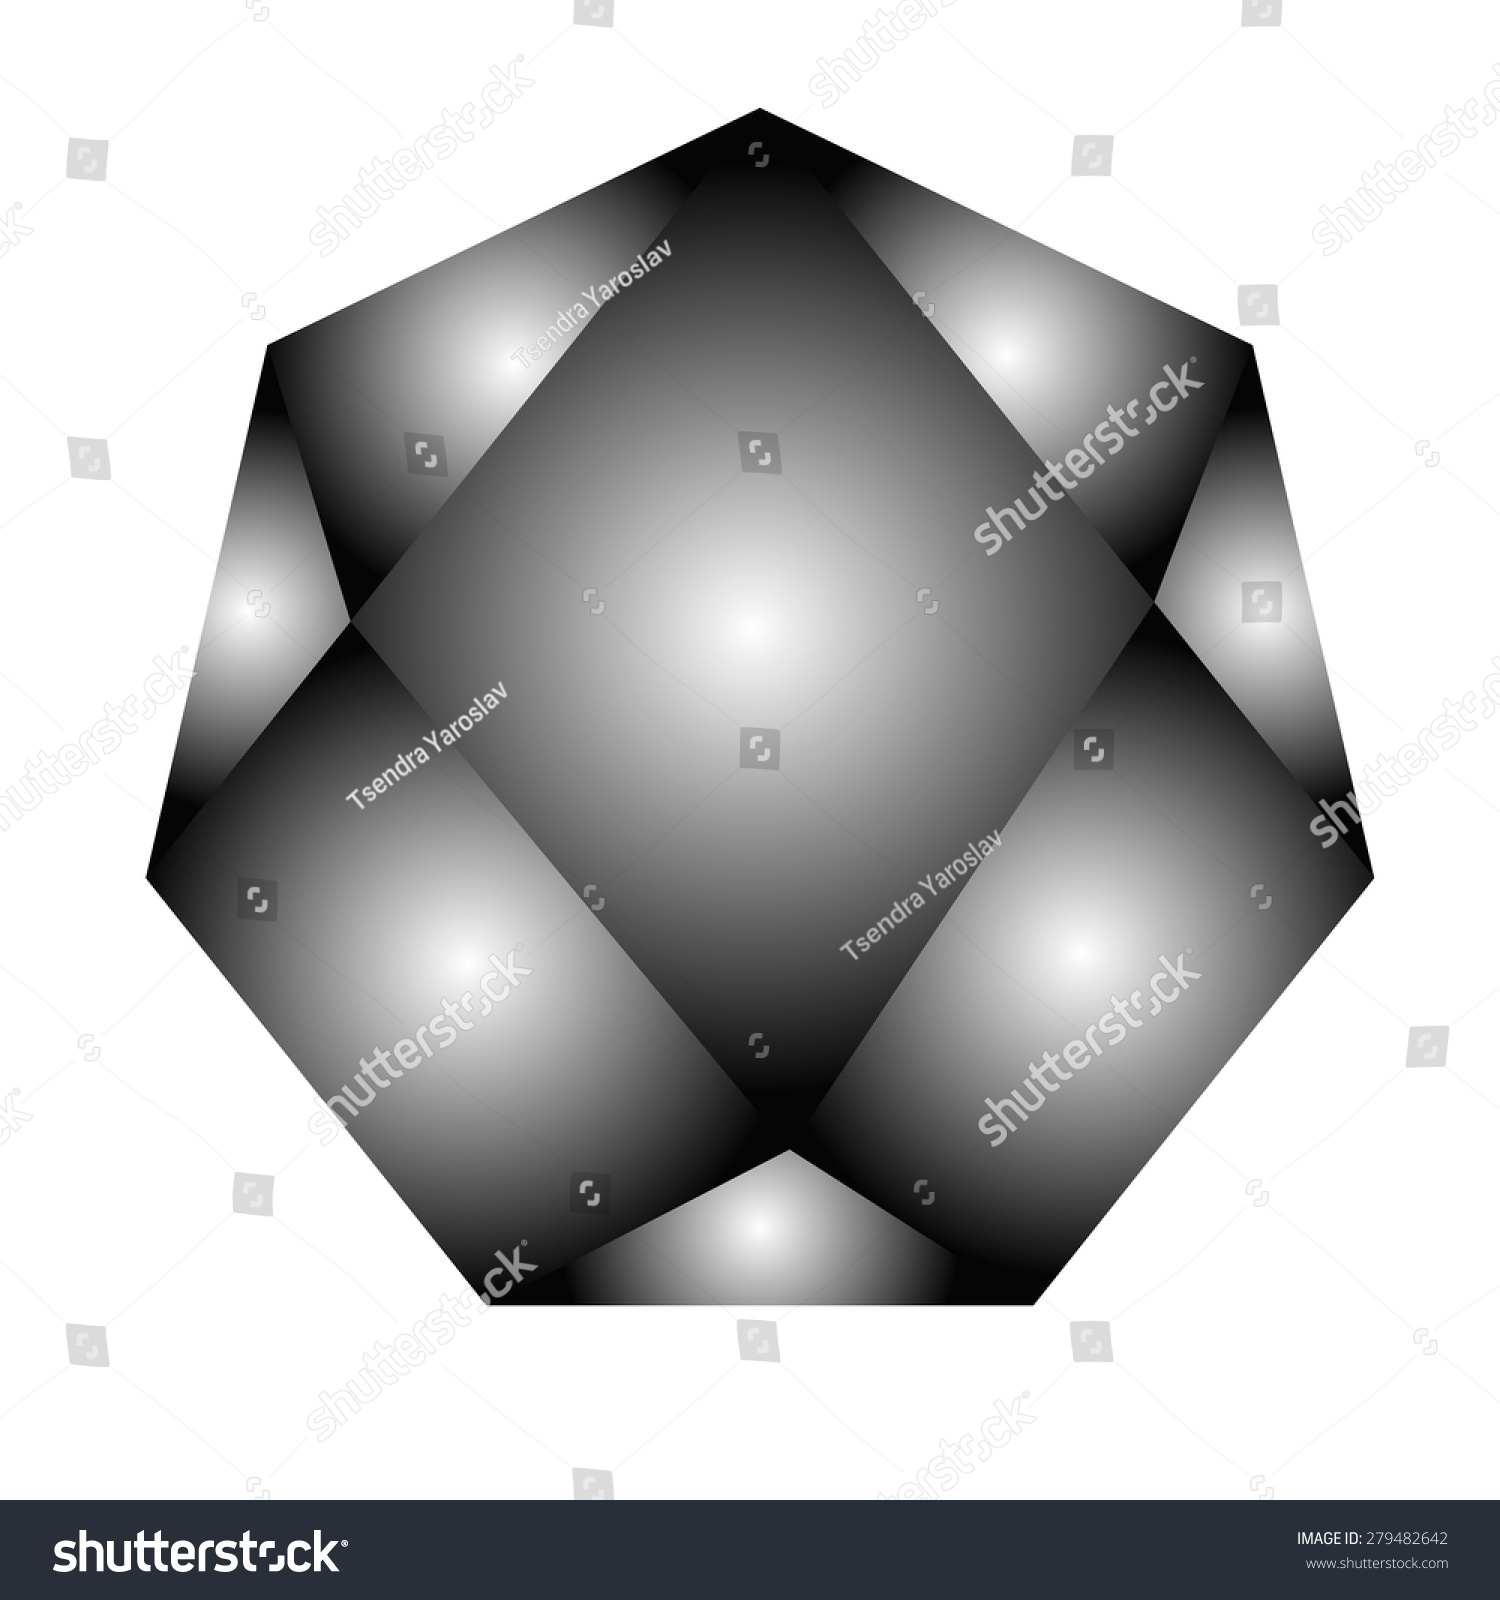 world bigstock stock polygon diamond map photo in image vector background